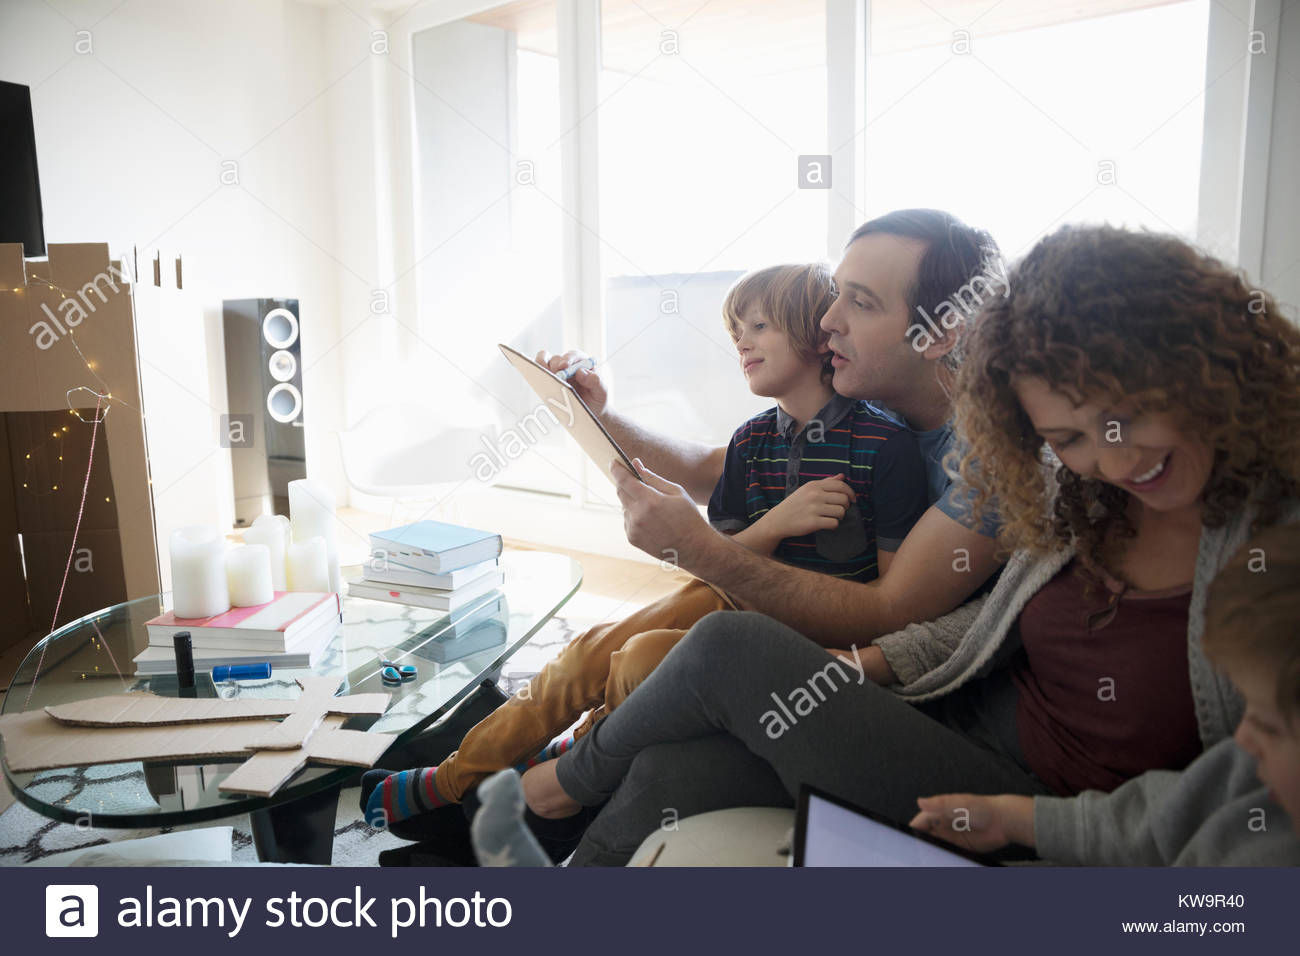 Family drawing and using digital tablet in living room - Stock Image